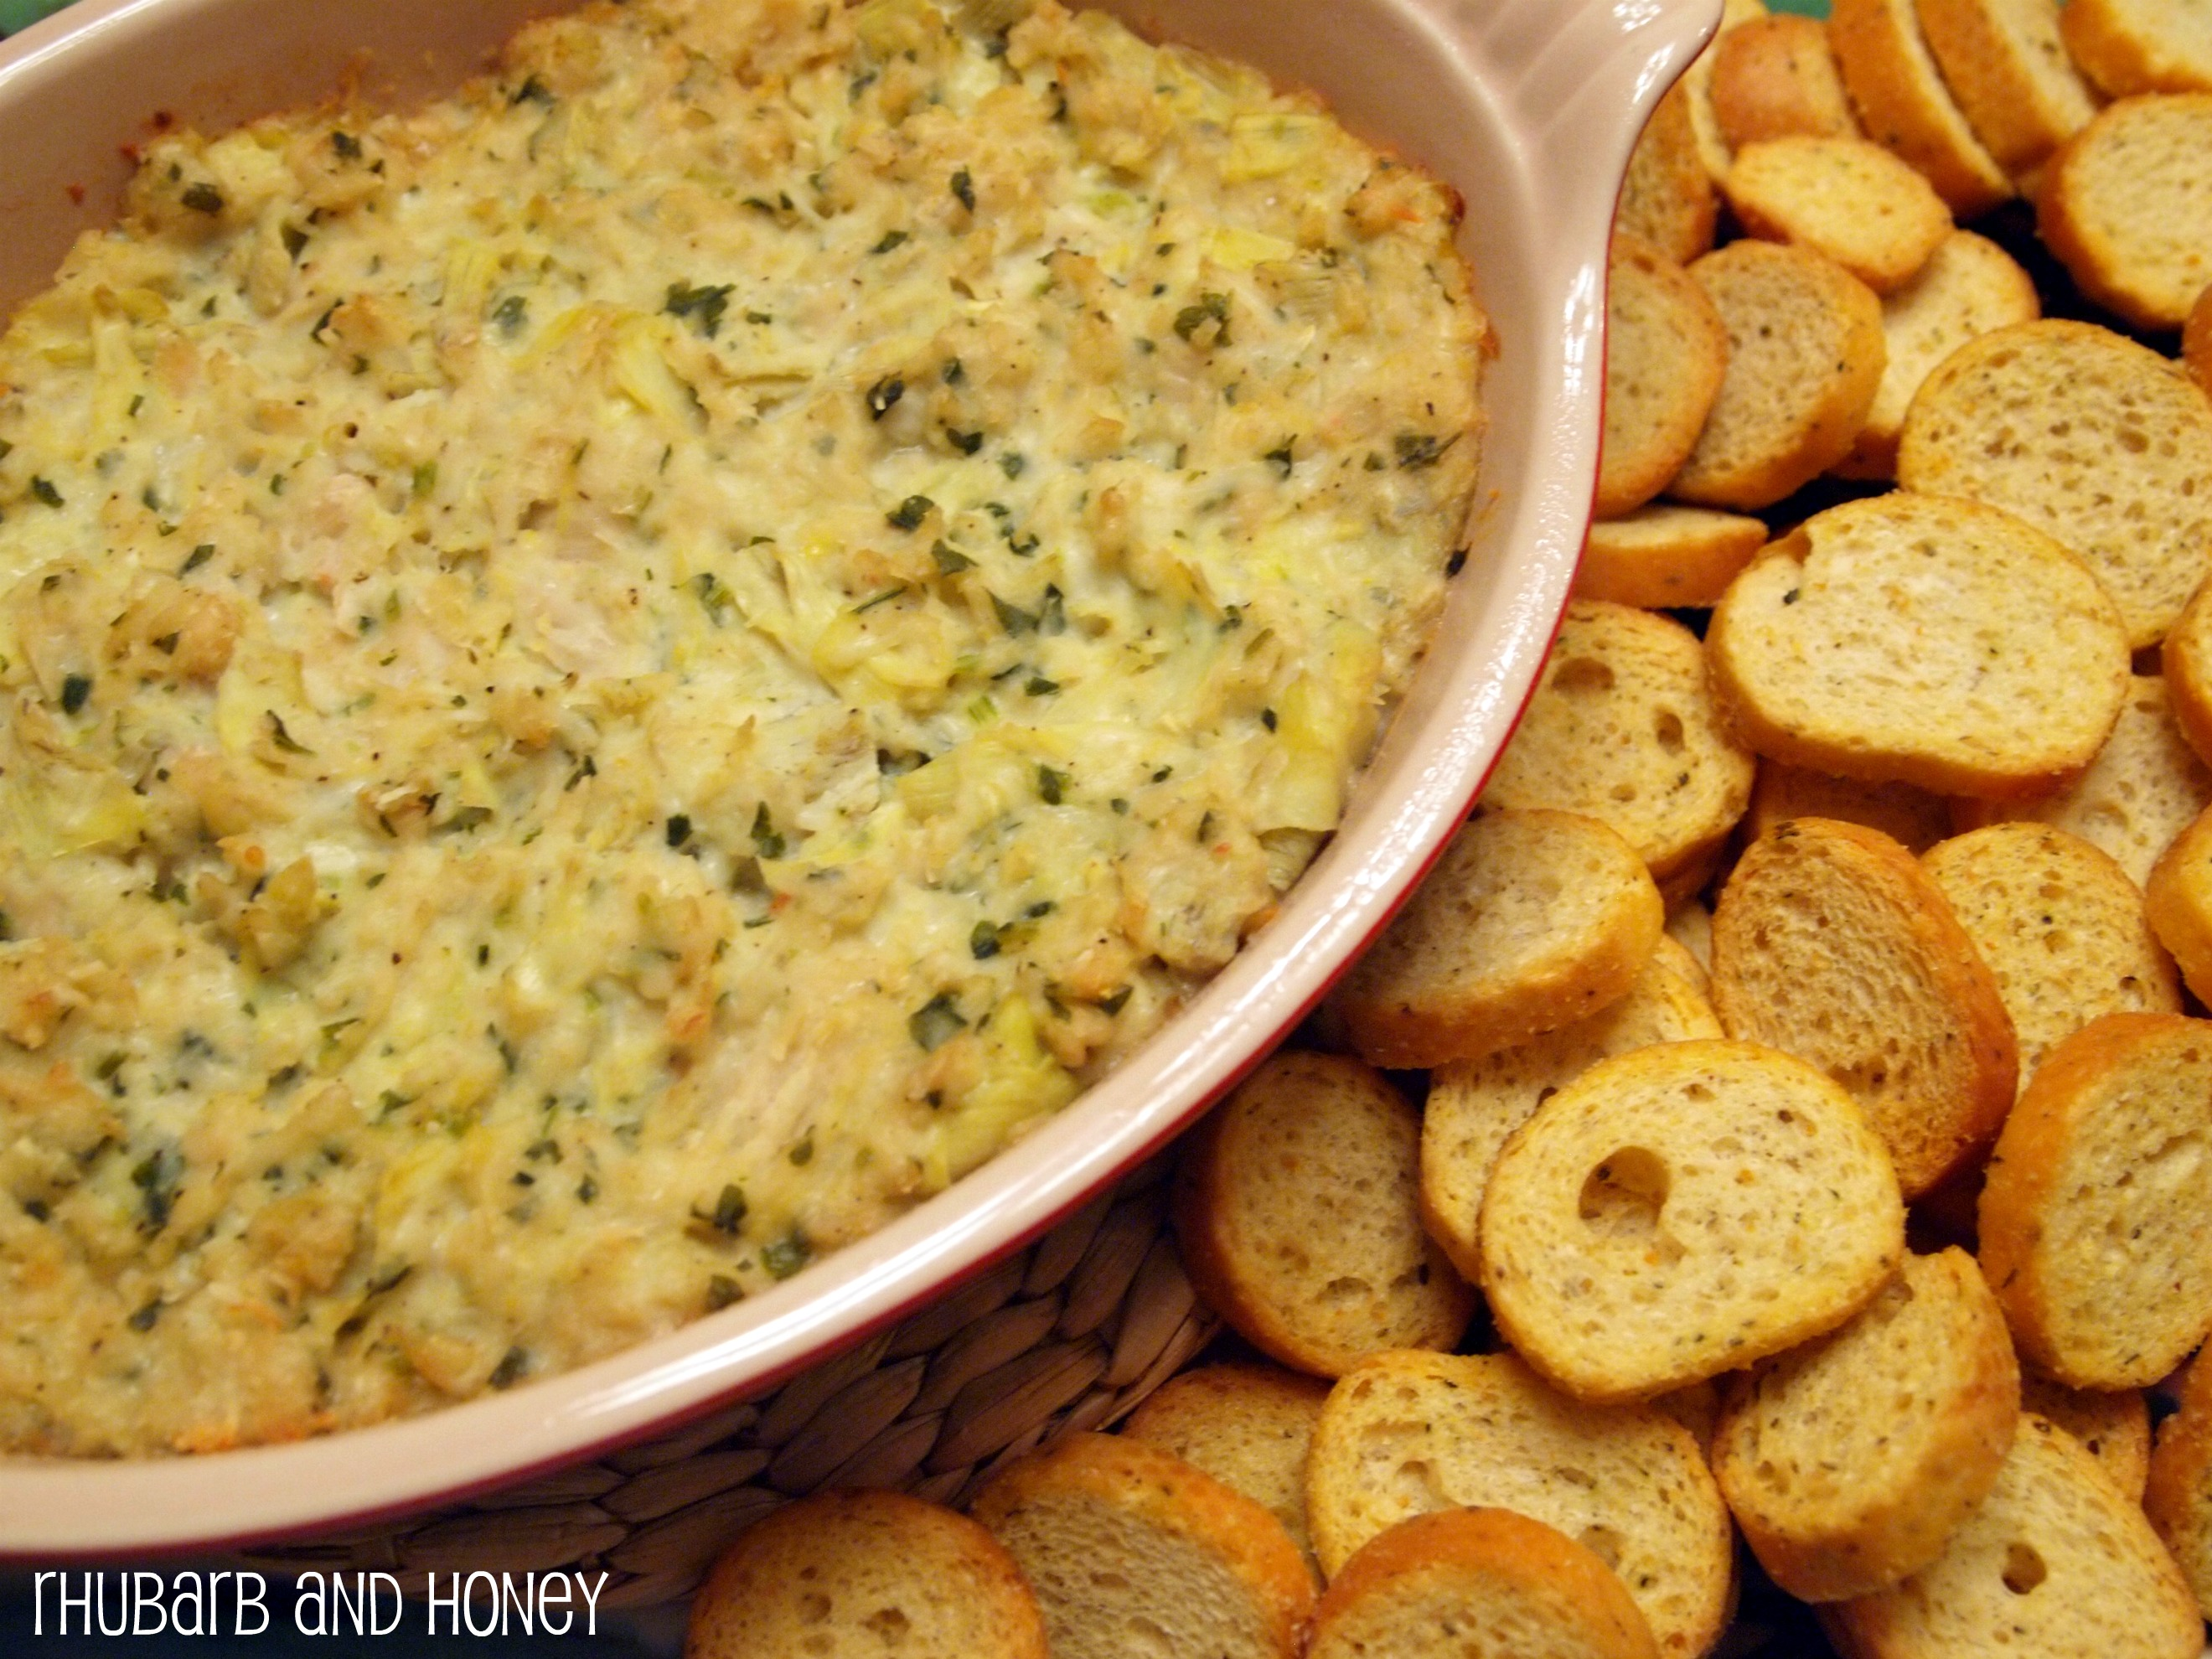 Baked Artichoke and Cannellini Bean Dip